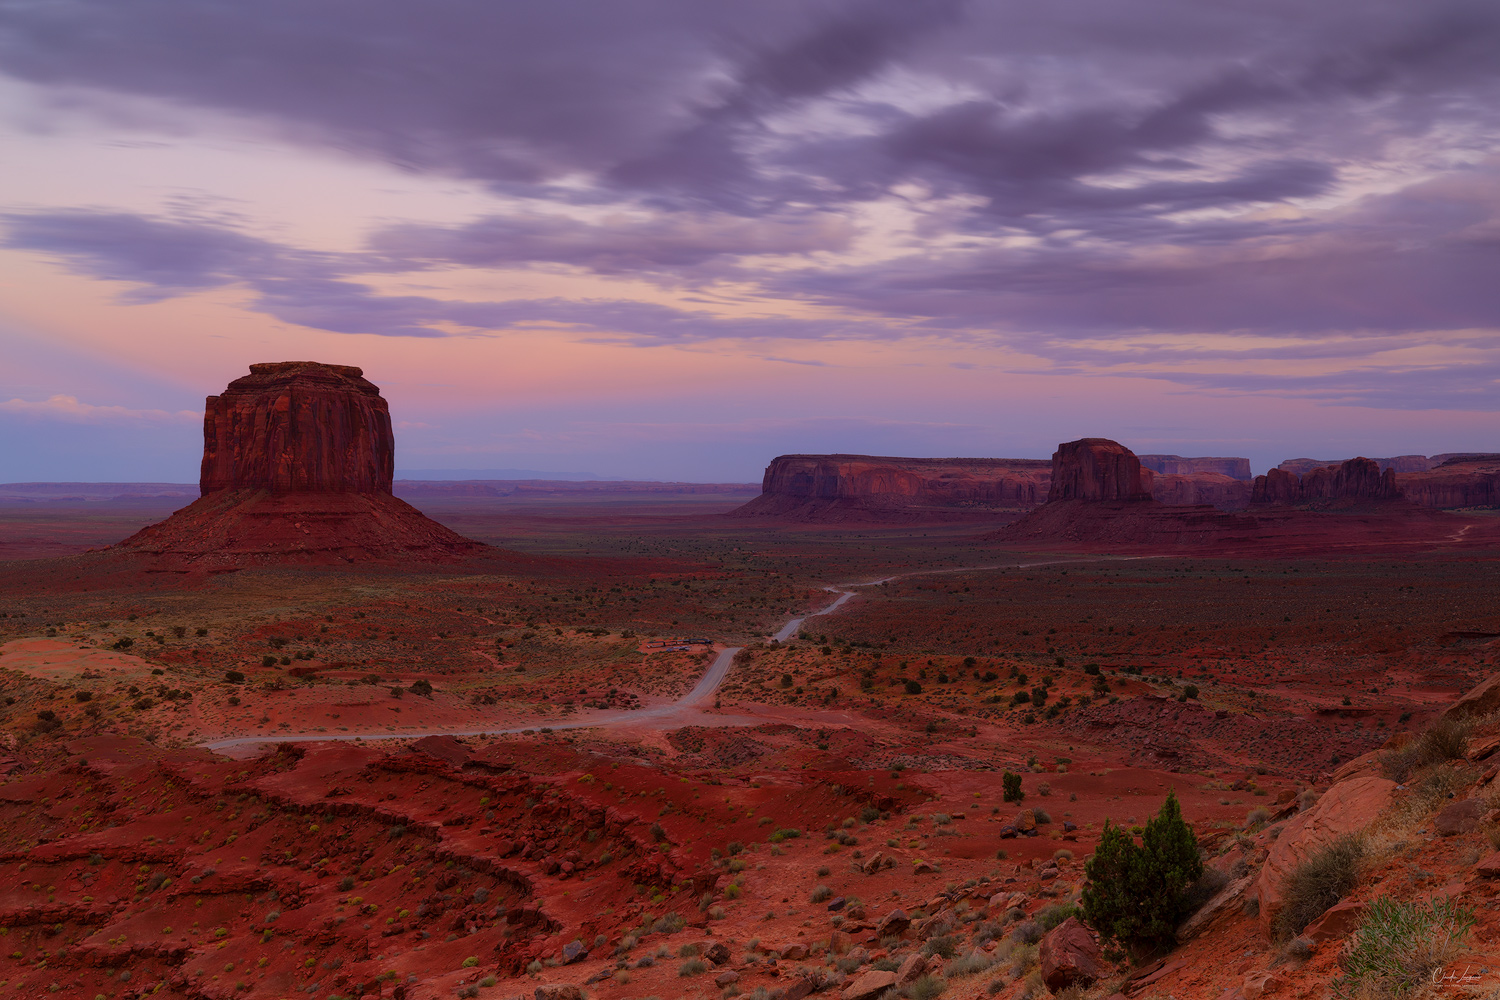 View on the sandstone towers at sunset in Monument Valley on the Arizona-Utah border.